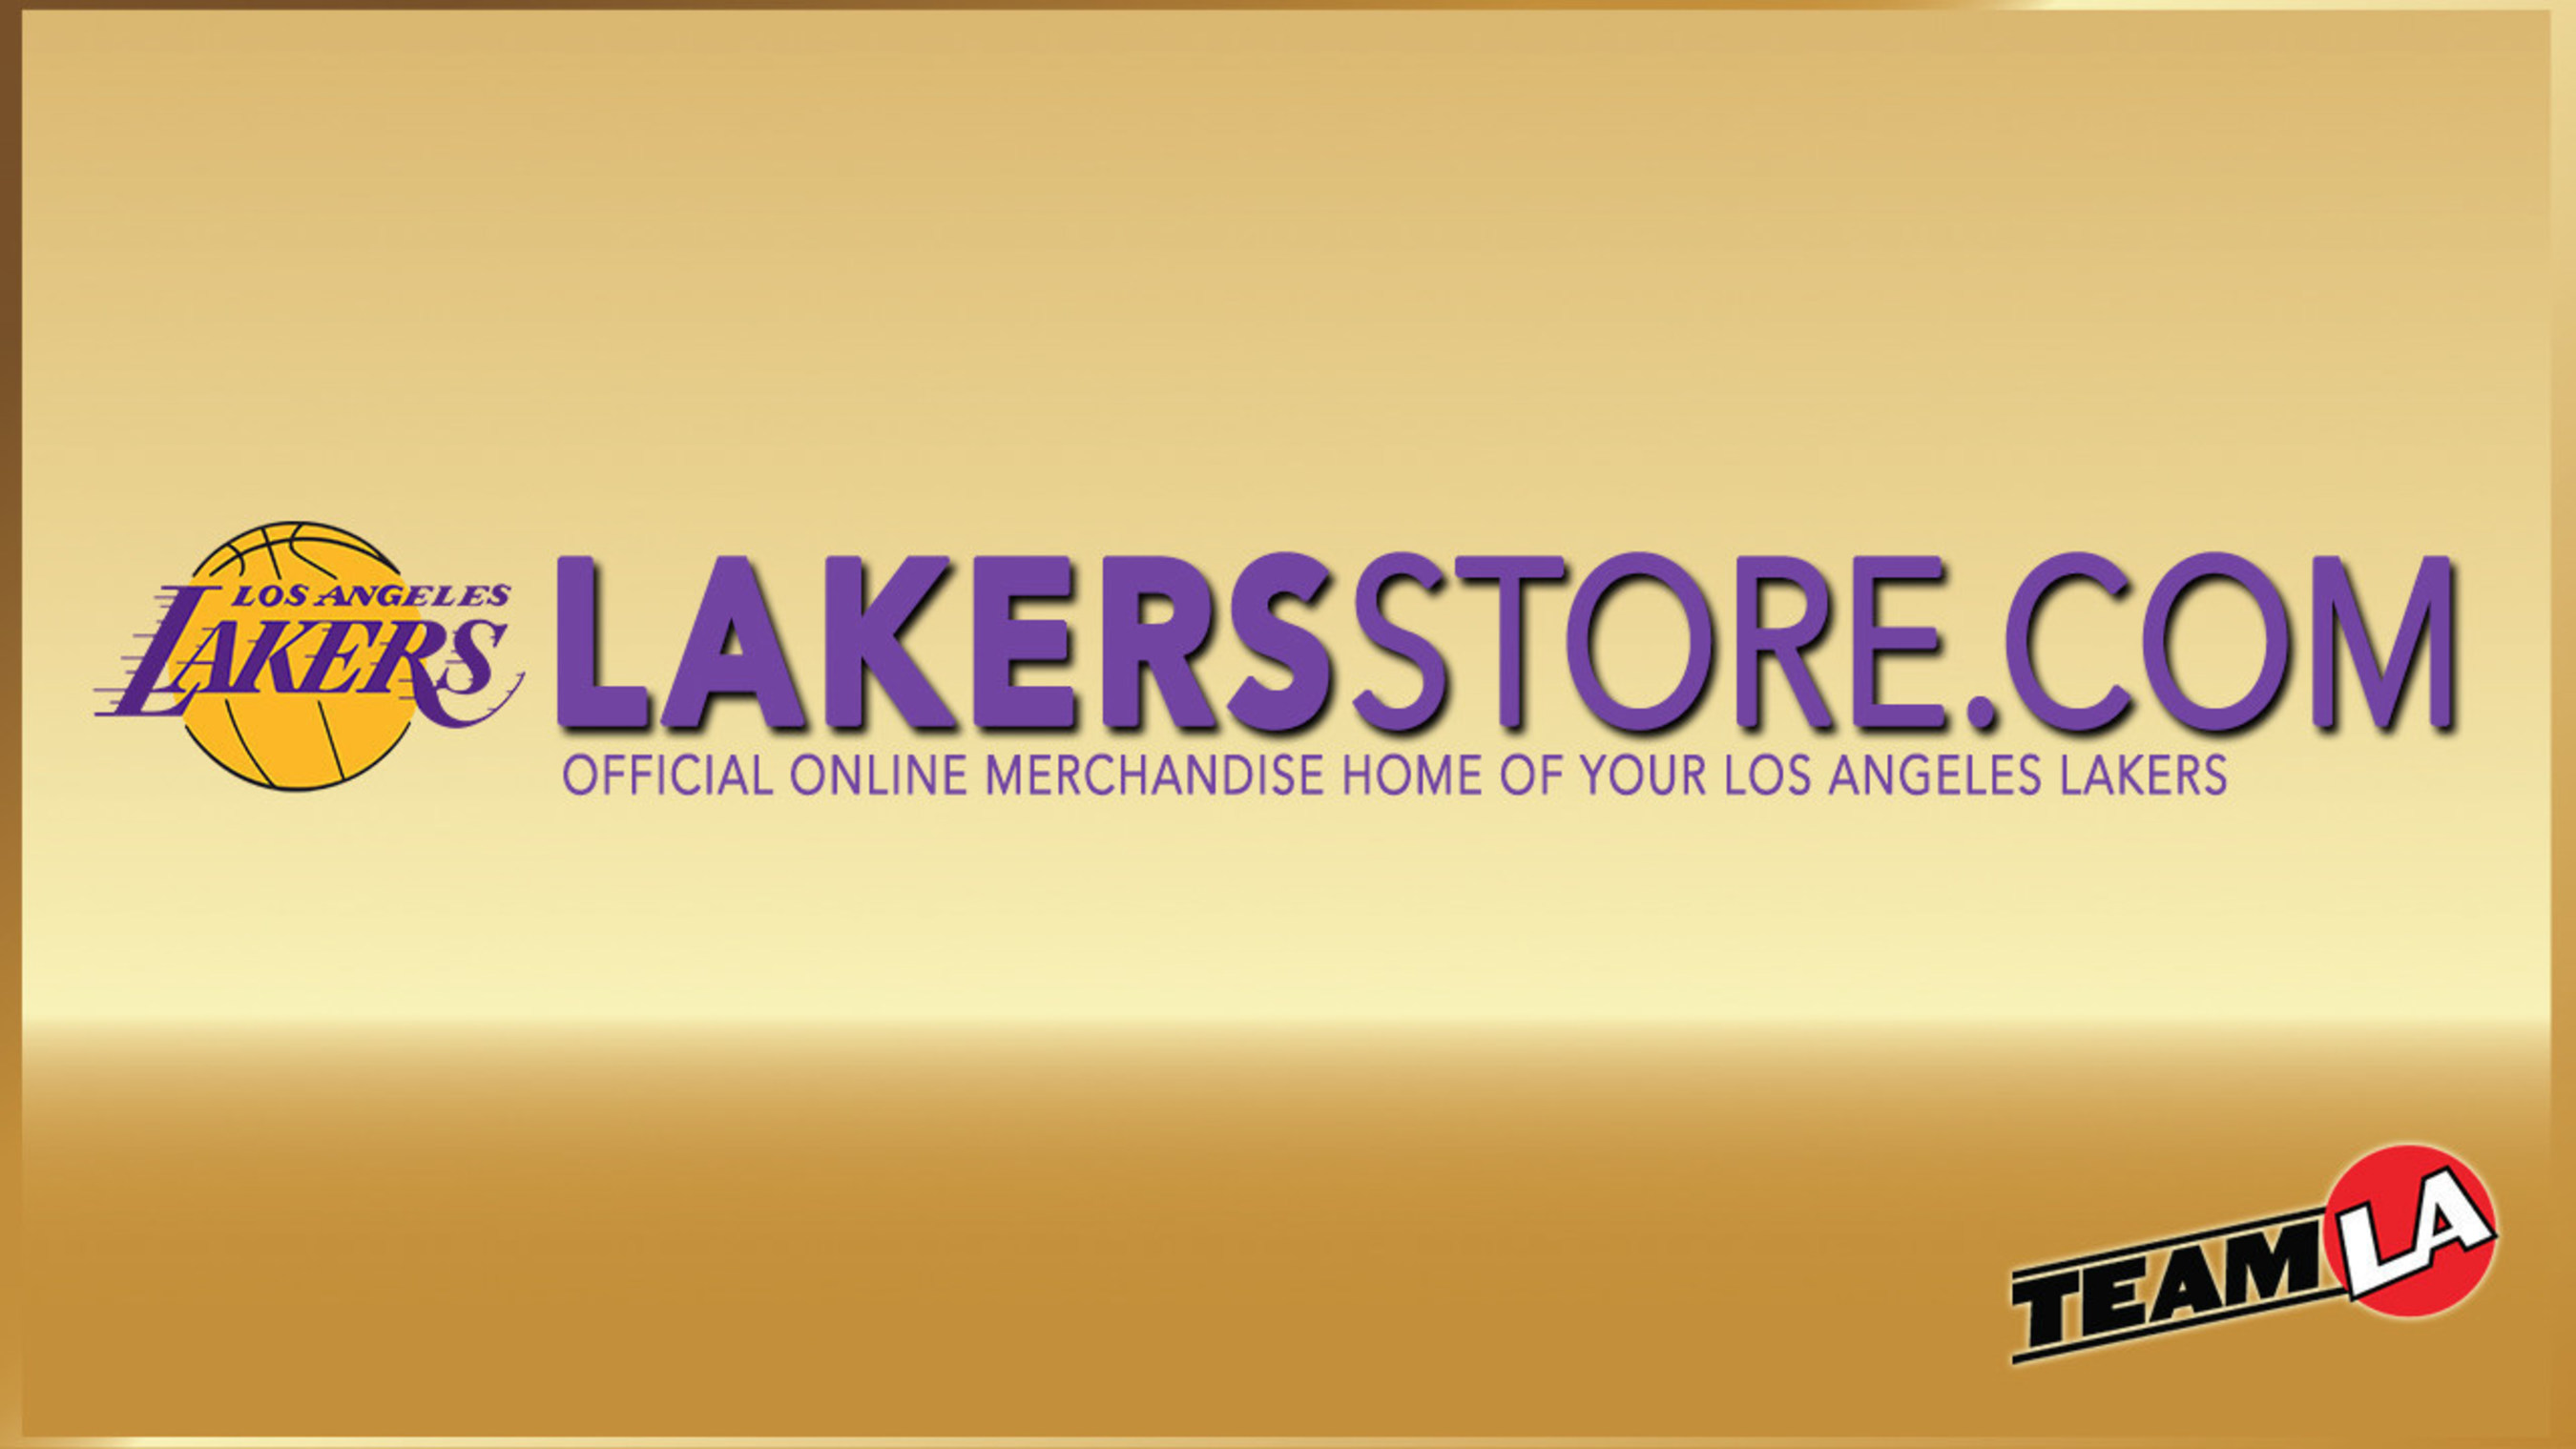 bc559ba783c AEG Merchandise And Lakersstore.com Unveil The Official Kobe Bryant